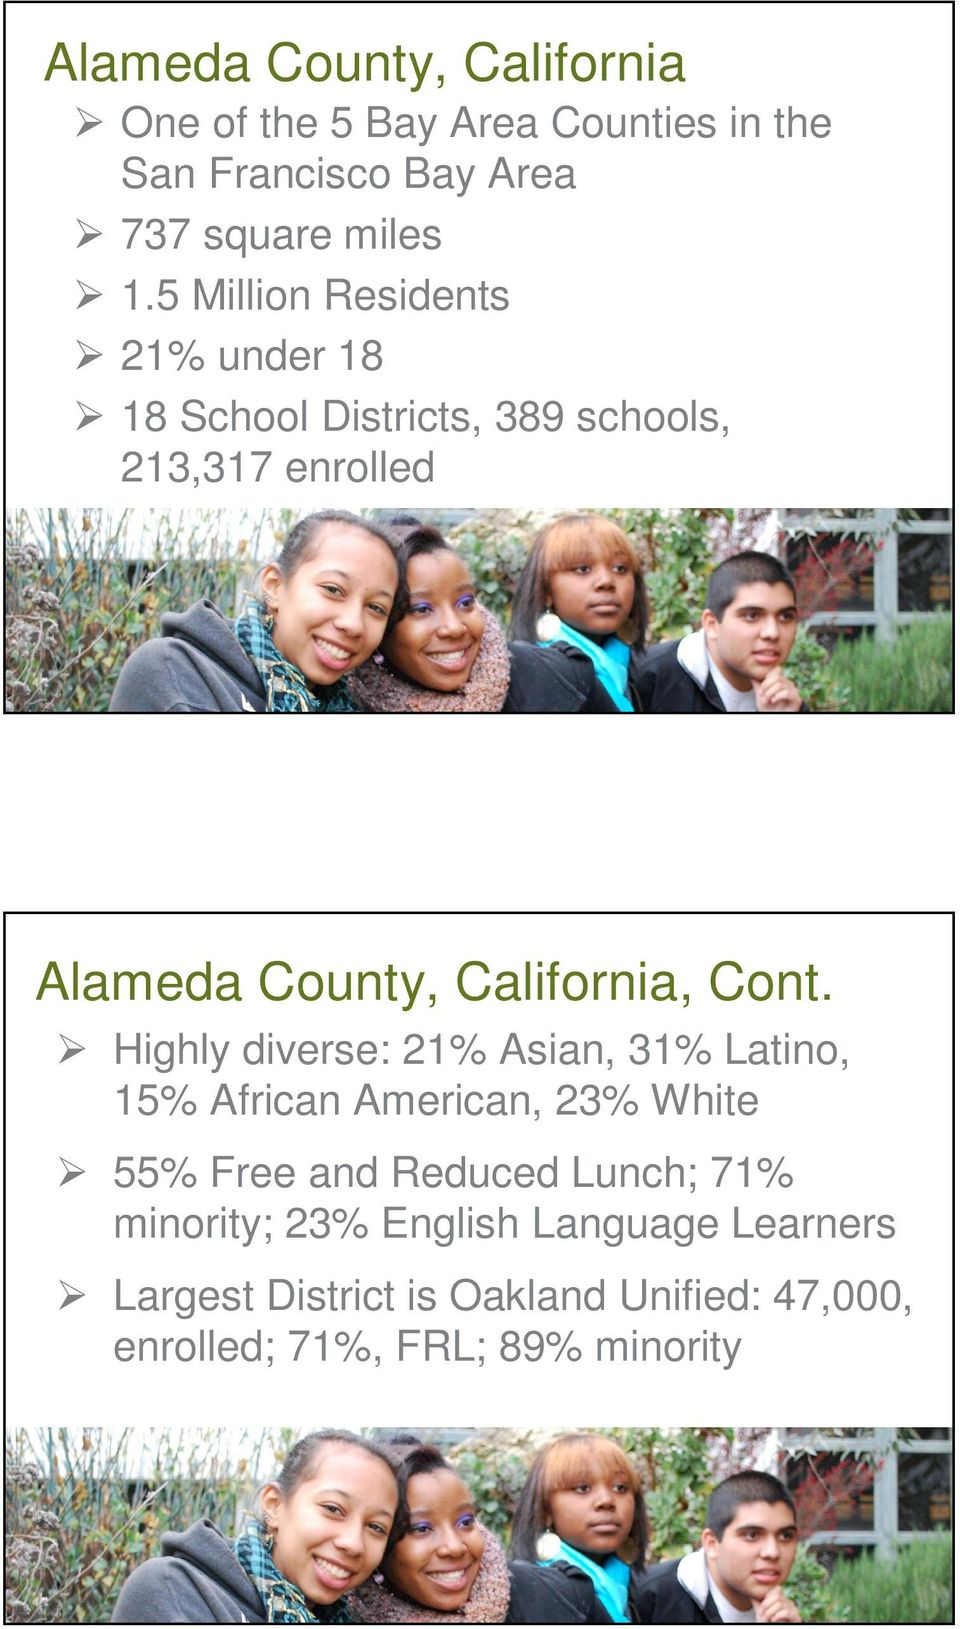 Cont. Highly diverse: 21% Asian, 31% Latino, 15% African American, 23% White 55% Free and Reduced Lunch; 71%